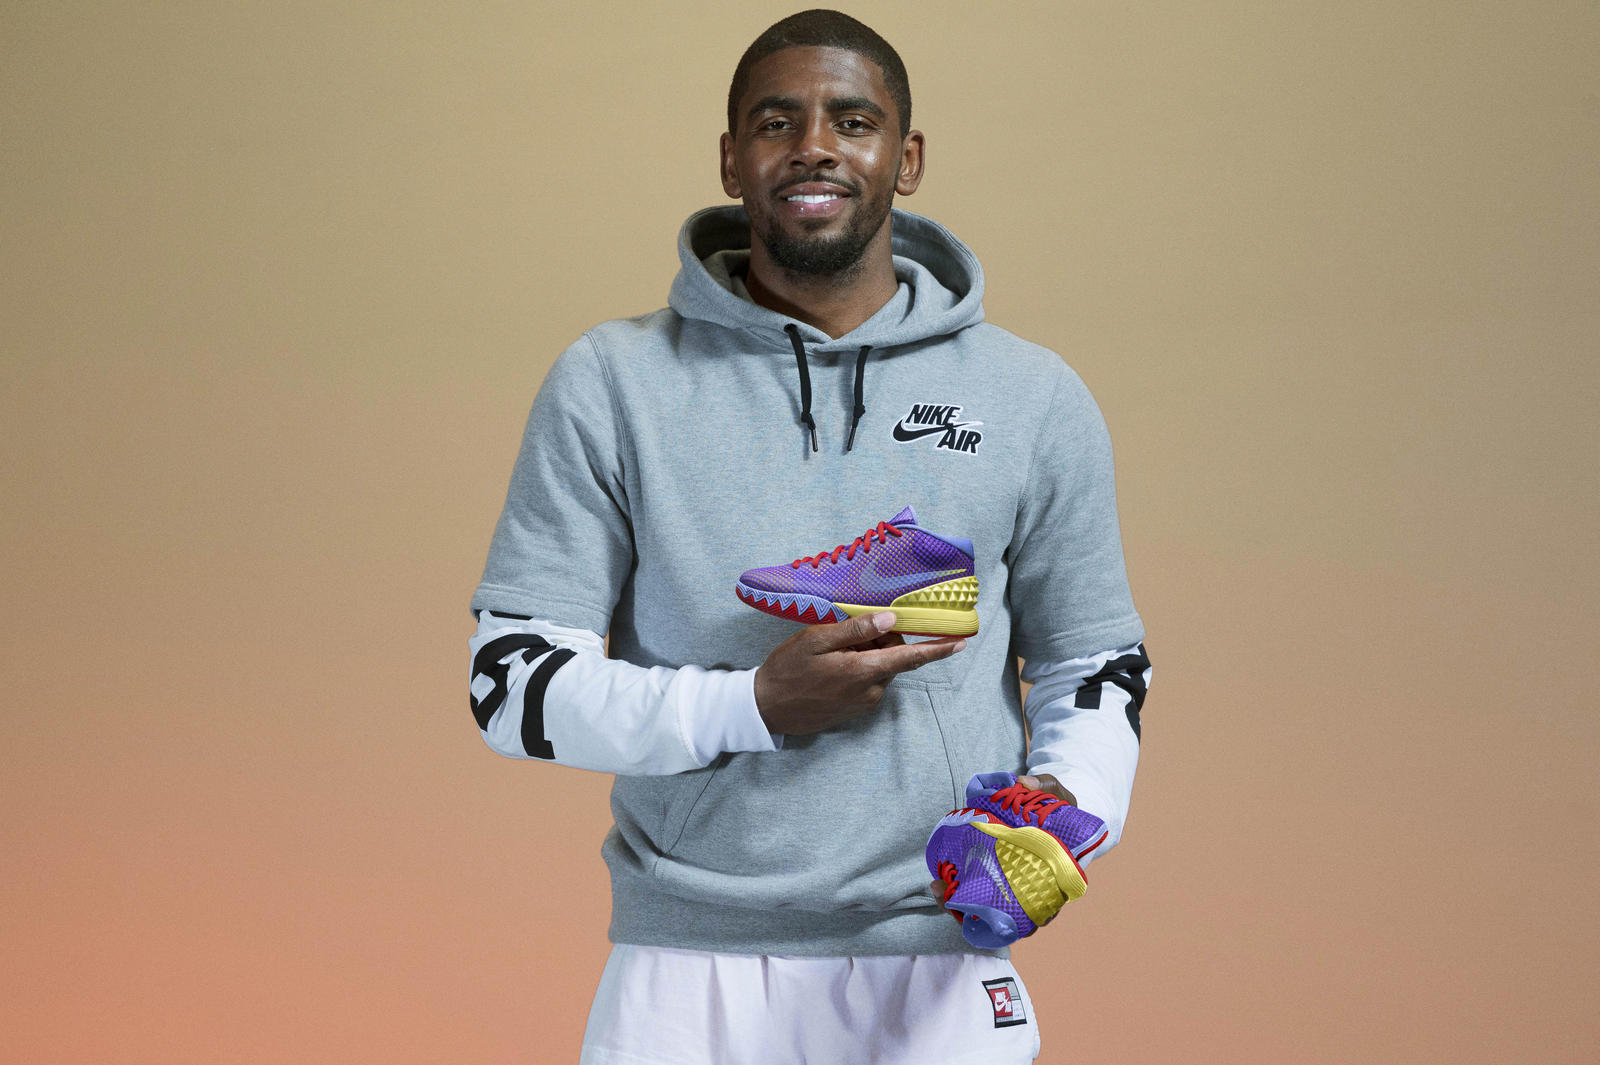 KYRIE IRVING AND THE KYRIE1 SATURDAYS